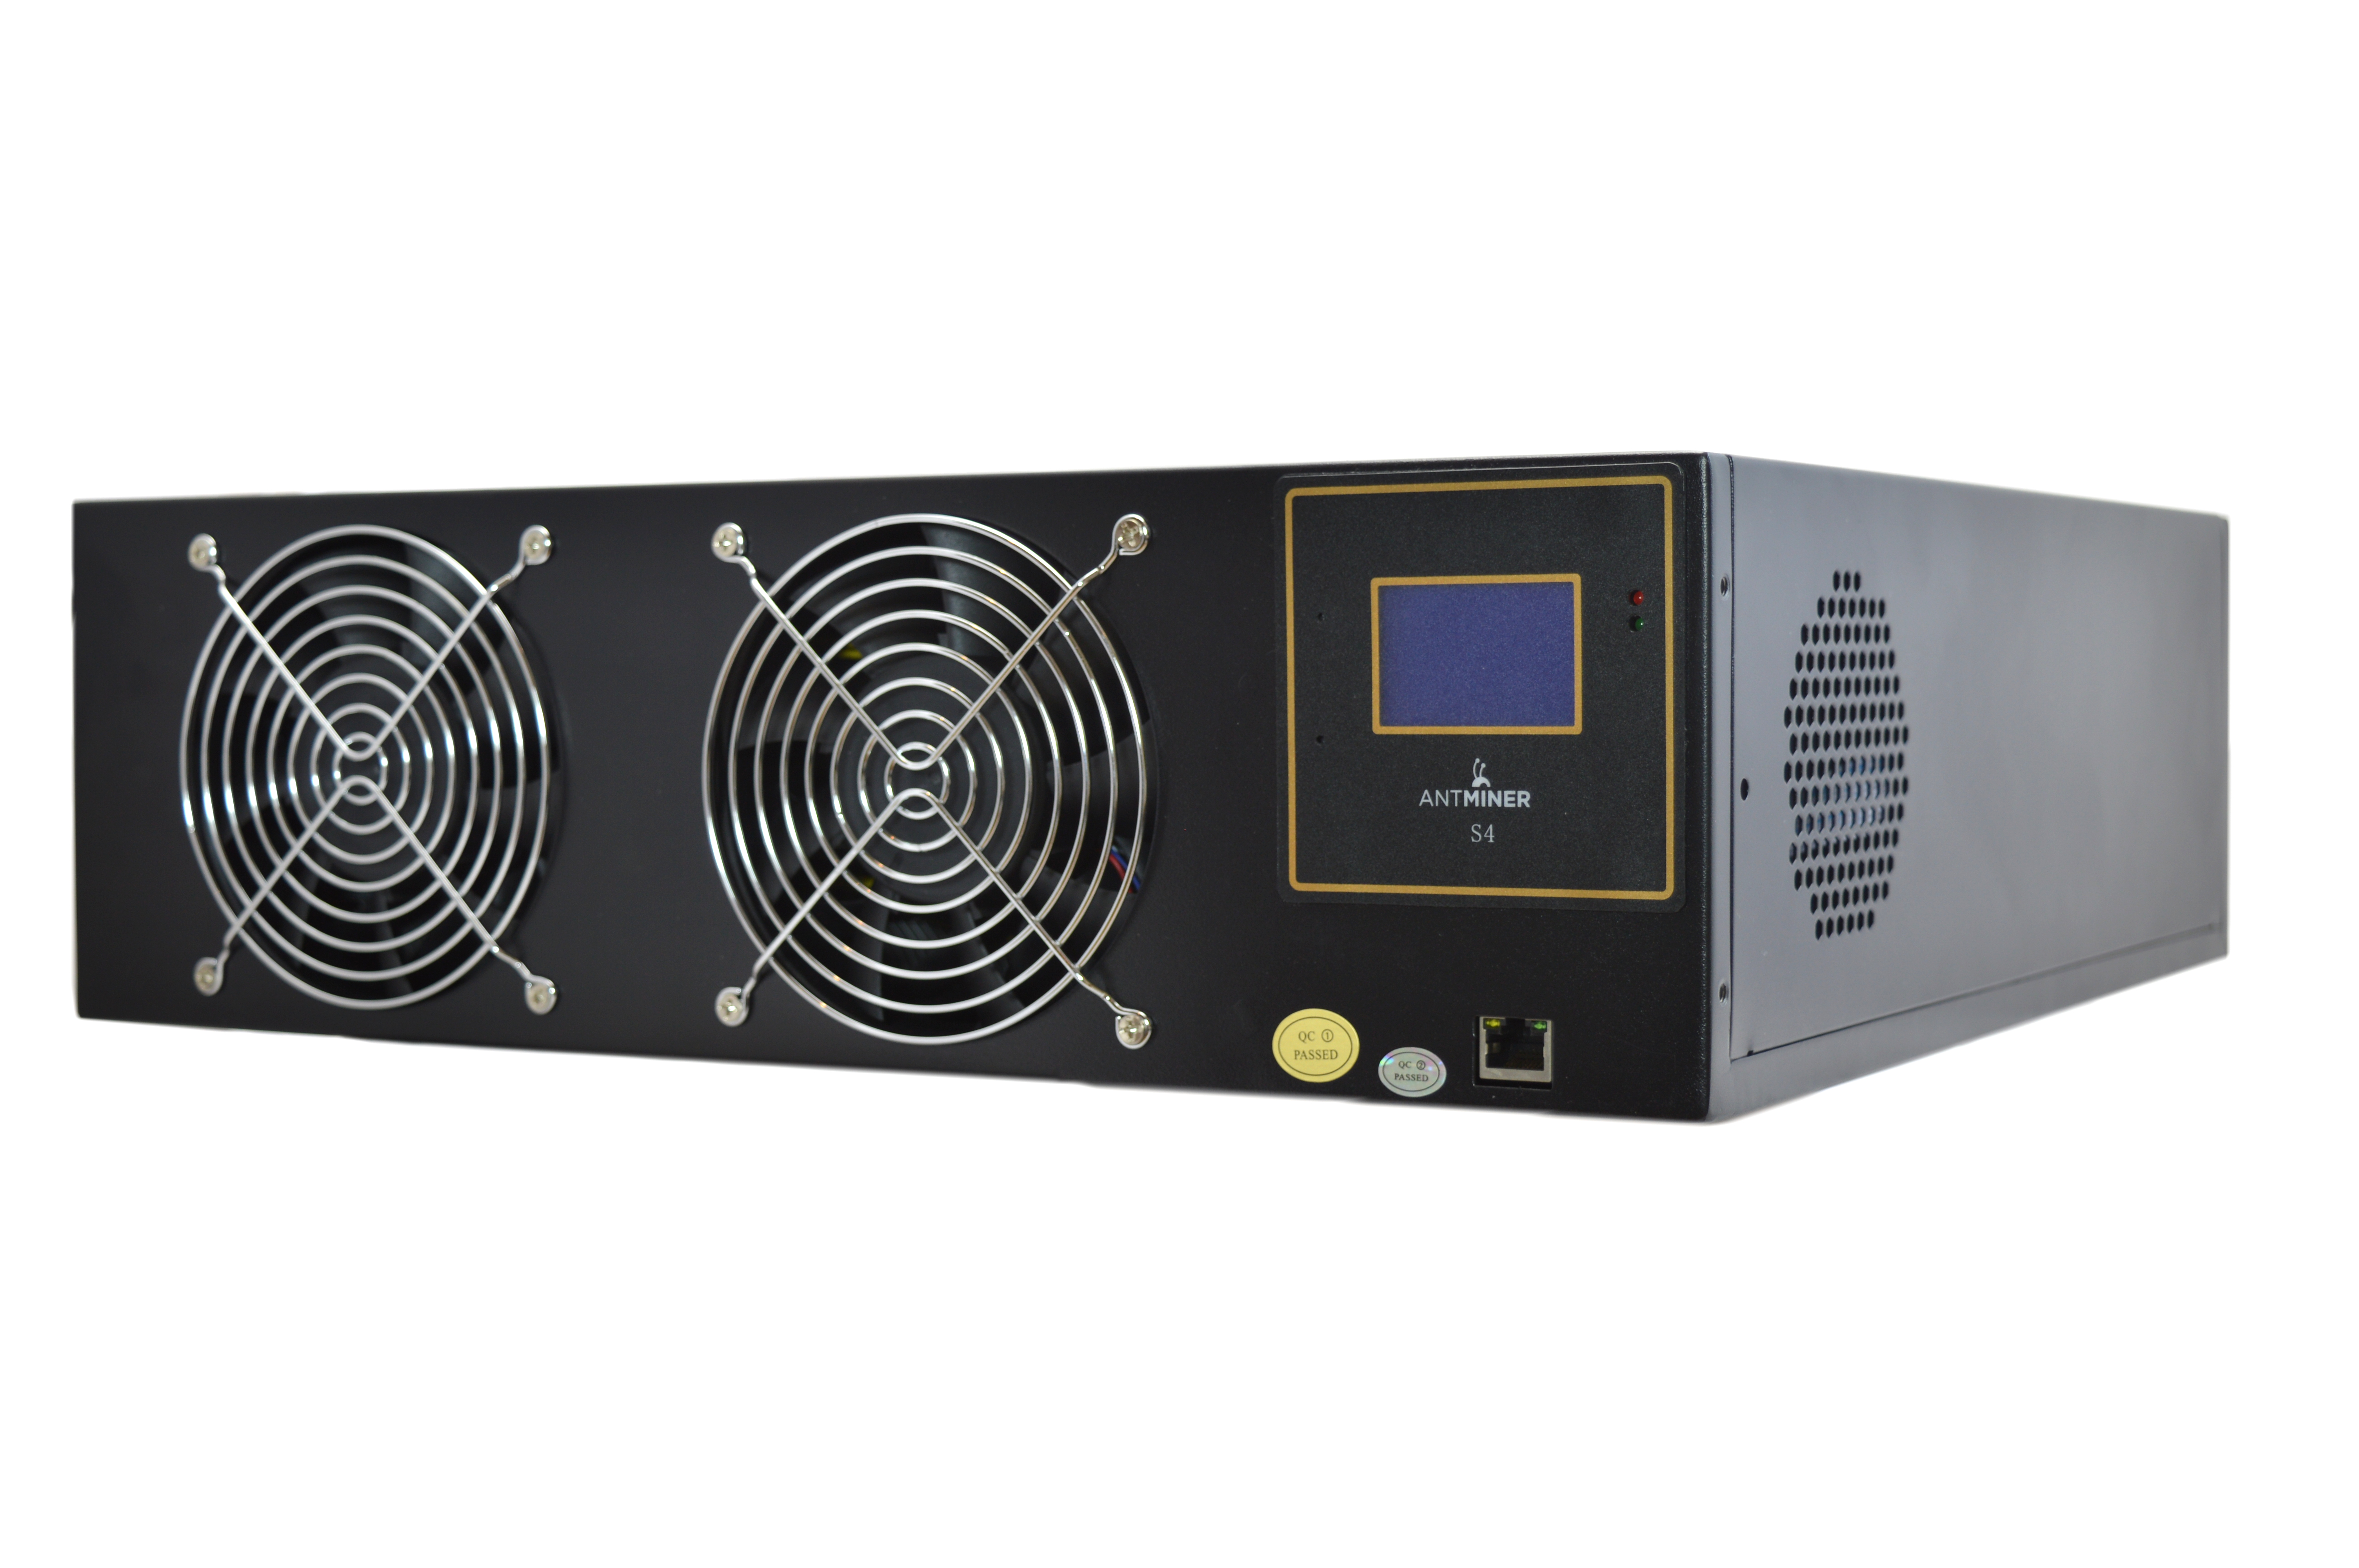 antminer s4 firmware